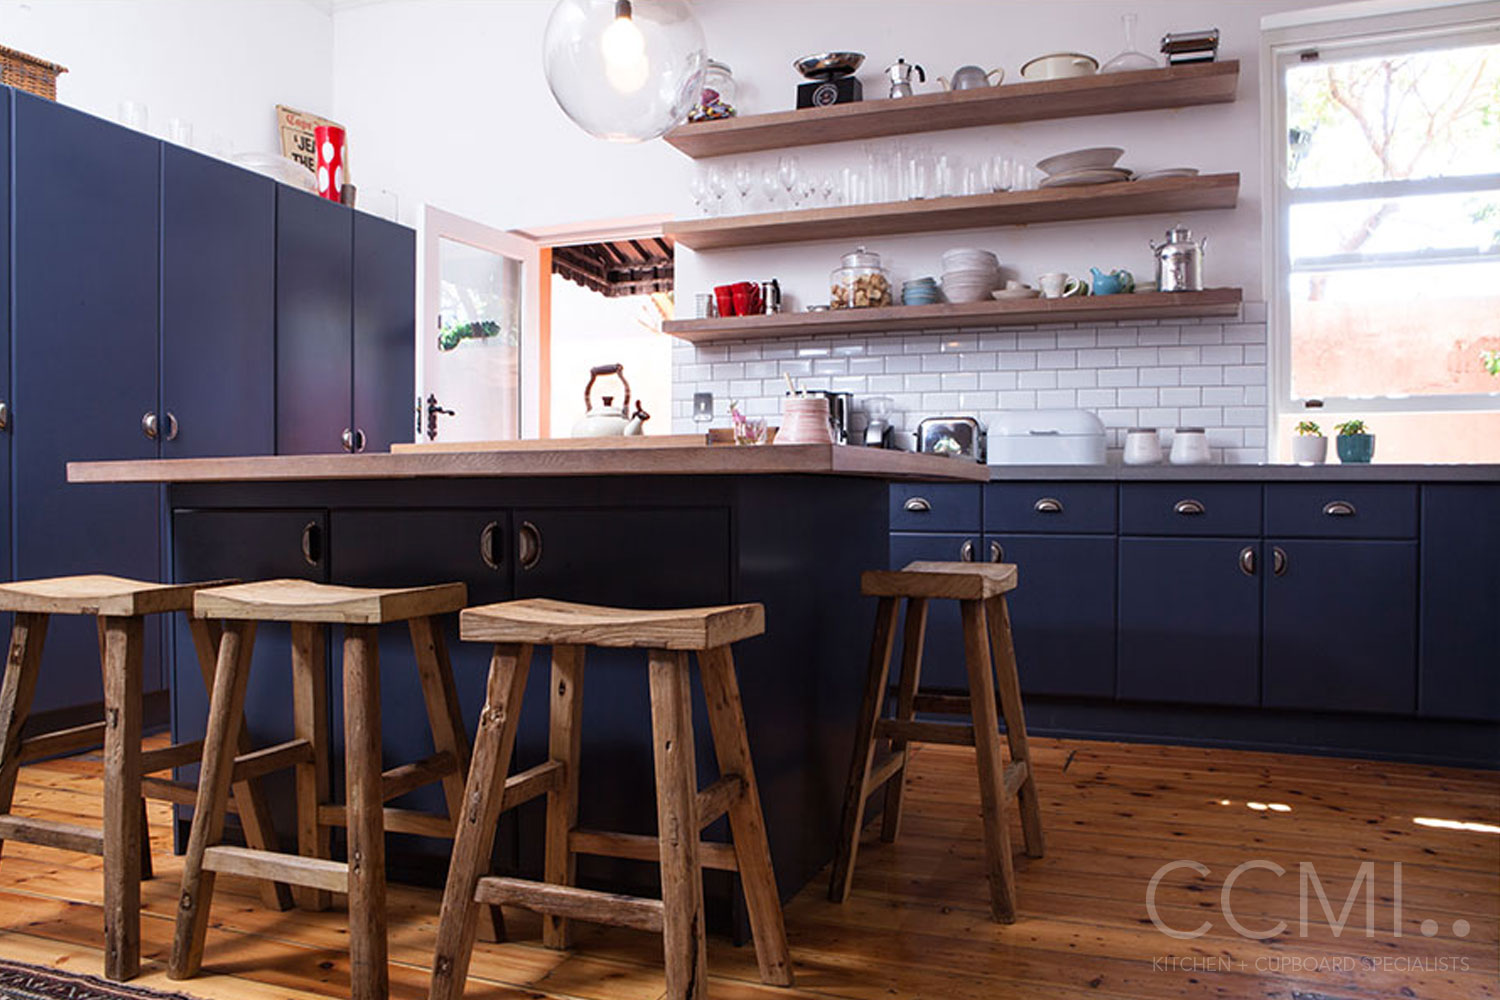 beautiful tableware displayed on open shelves that echo the wooden elements of the original oak flooring